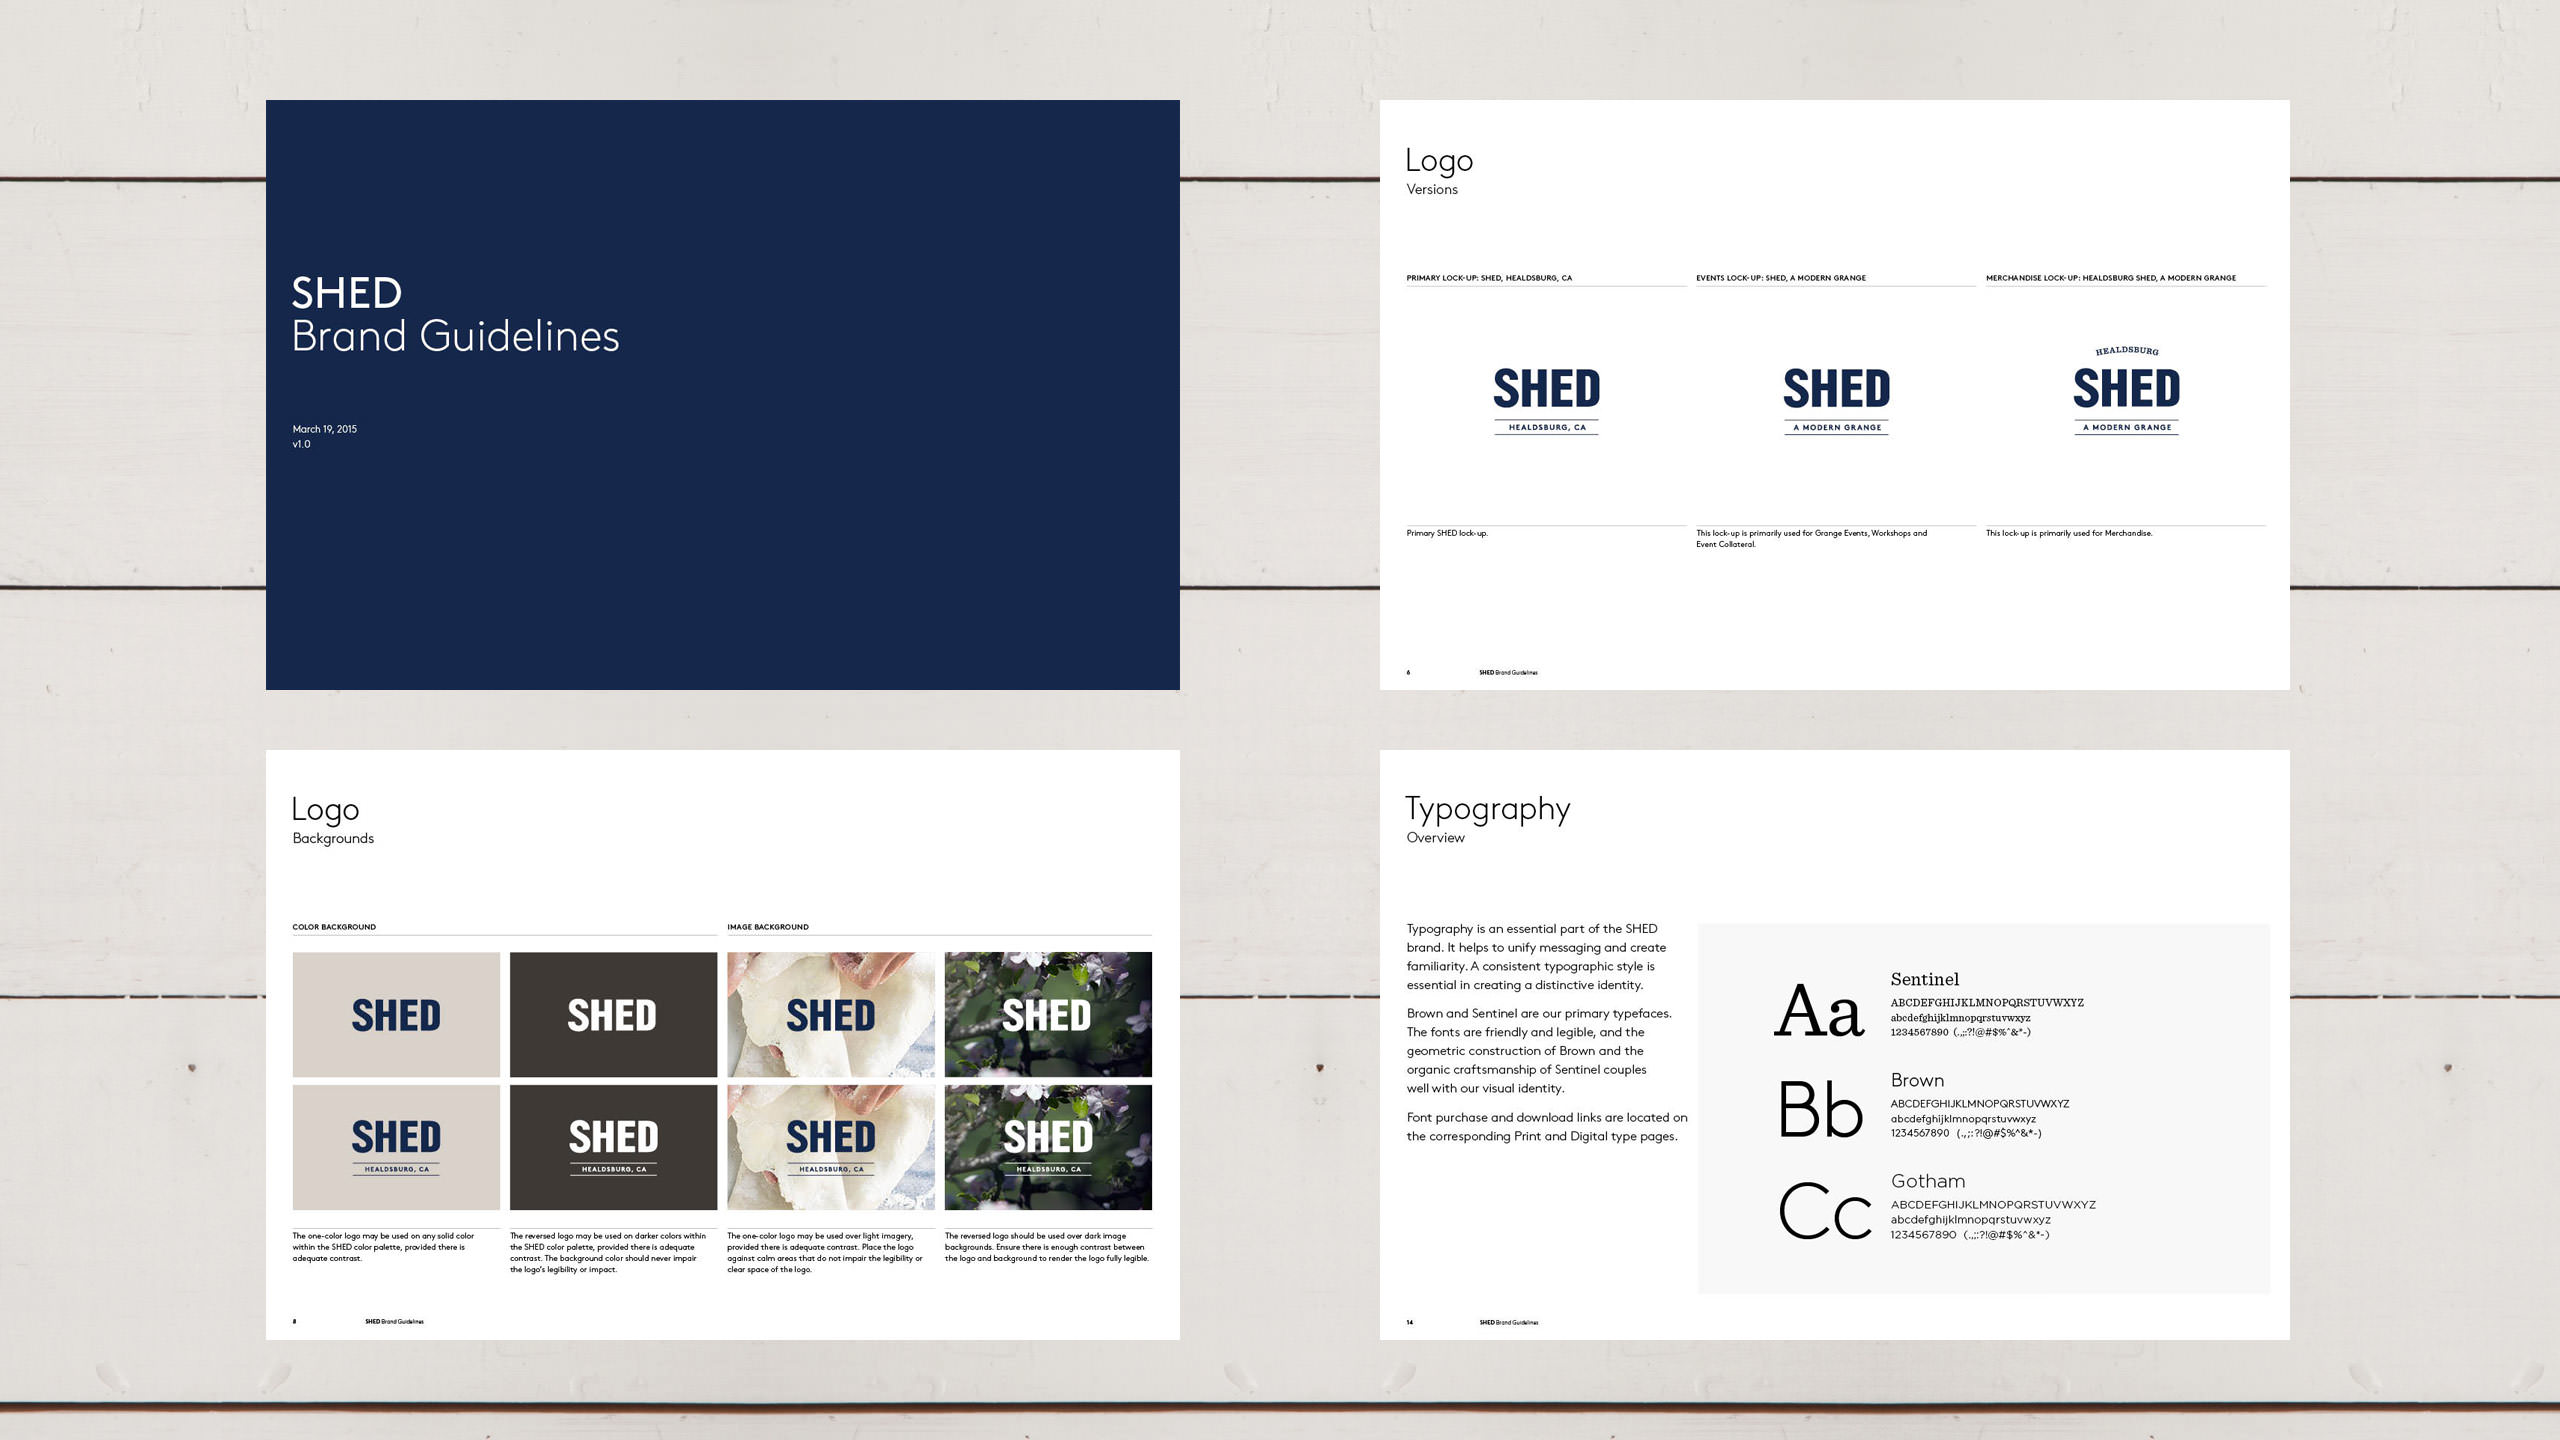 SHED Brand Refresh Guidelines